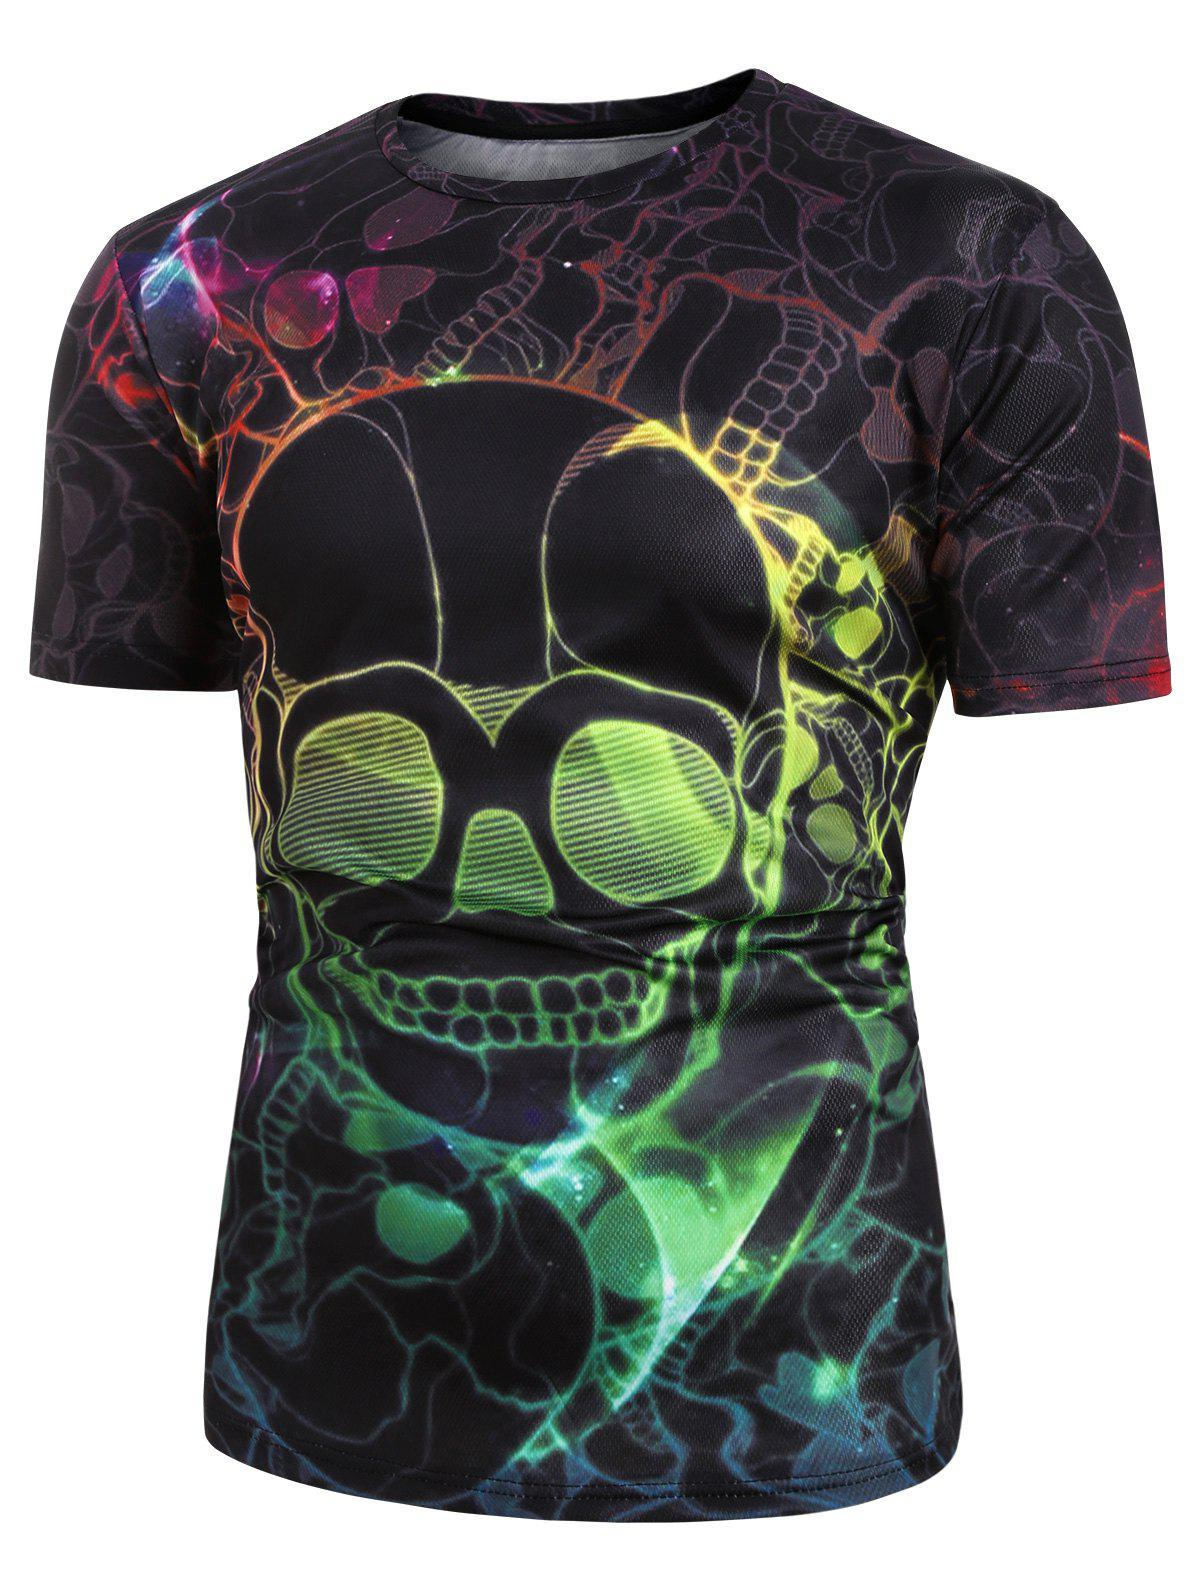 Discount Colorful Skull Pattern Short Sleeves T-shirt